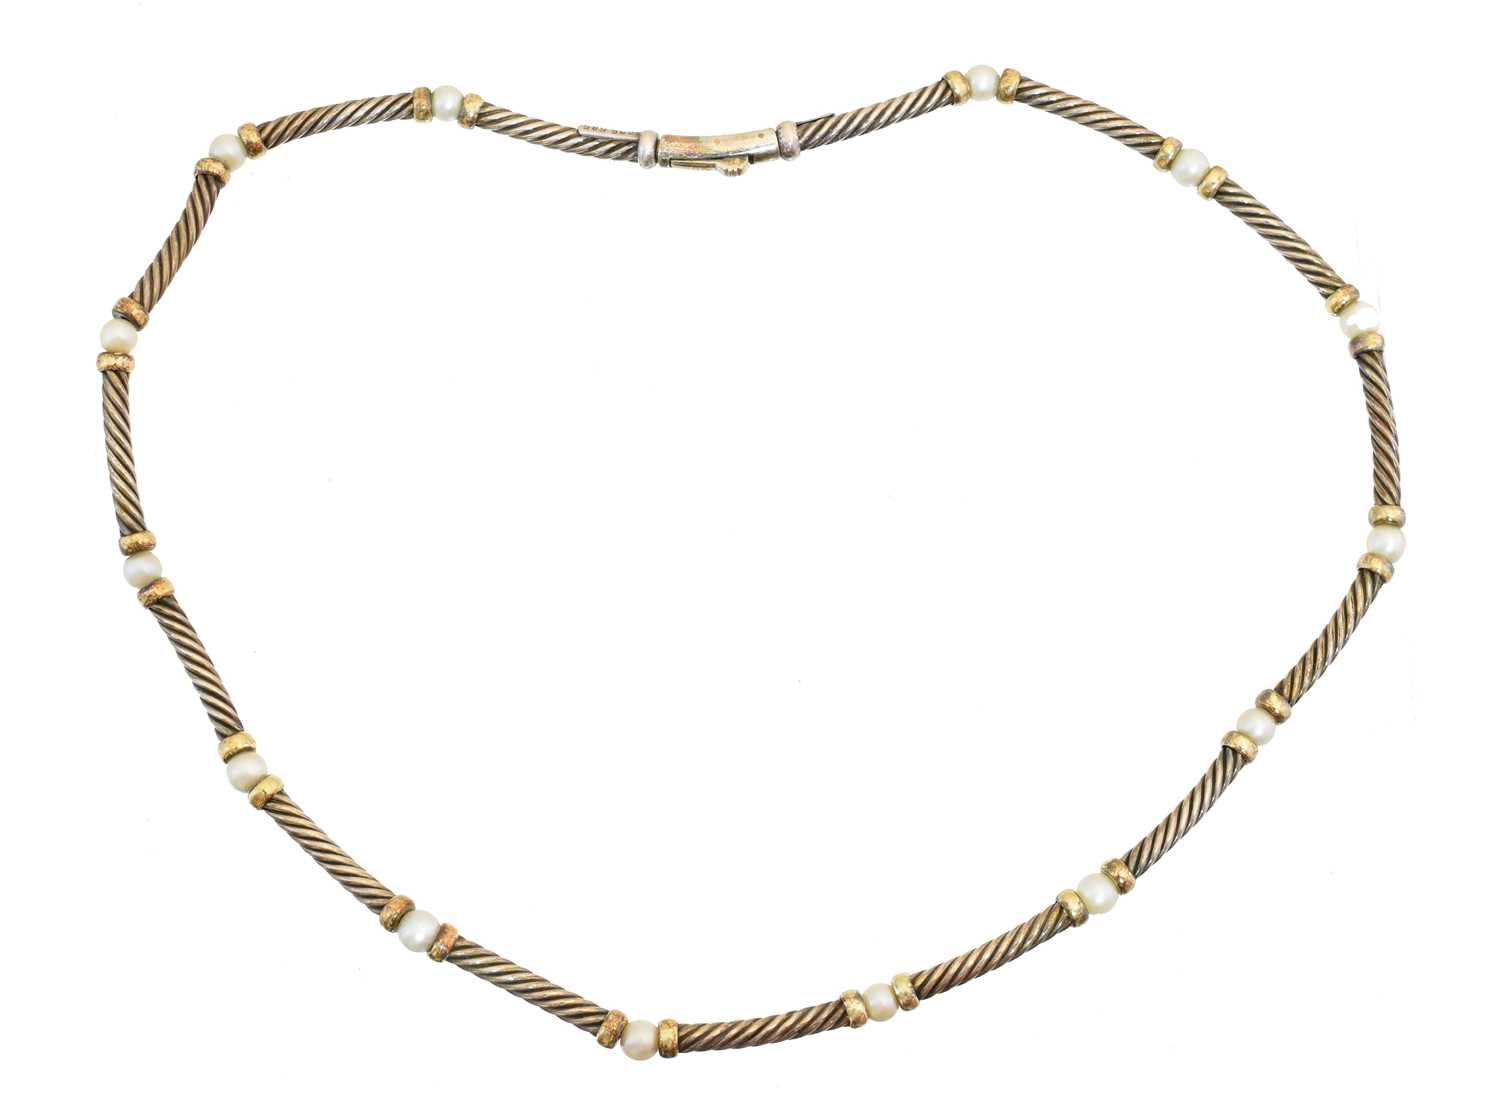 Lot A cultured pearl necklace by David Yurman